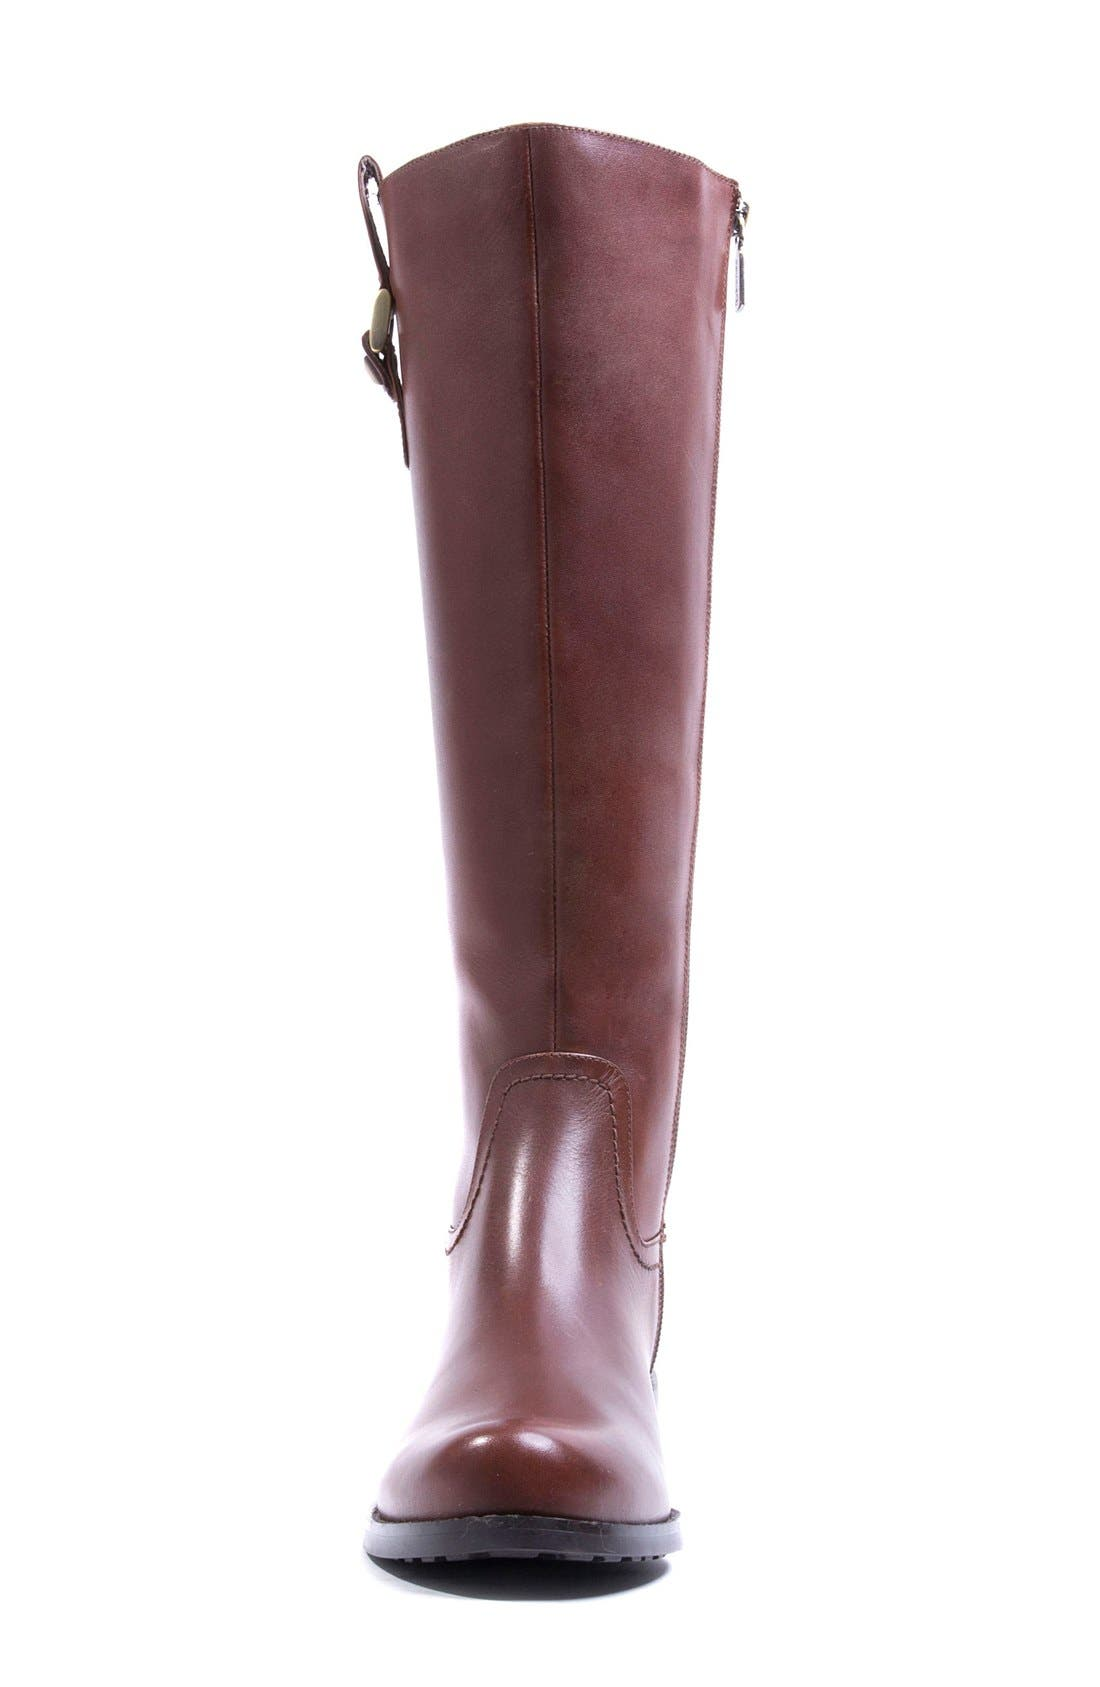 'Velvet' Waterproof Riding Boot,                             Alternate thumbnail 3, color,                             Butterscotch Leather